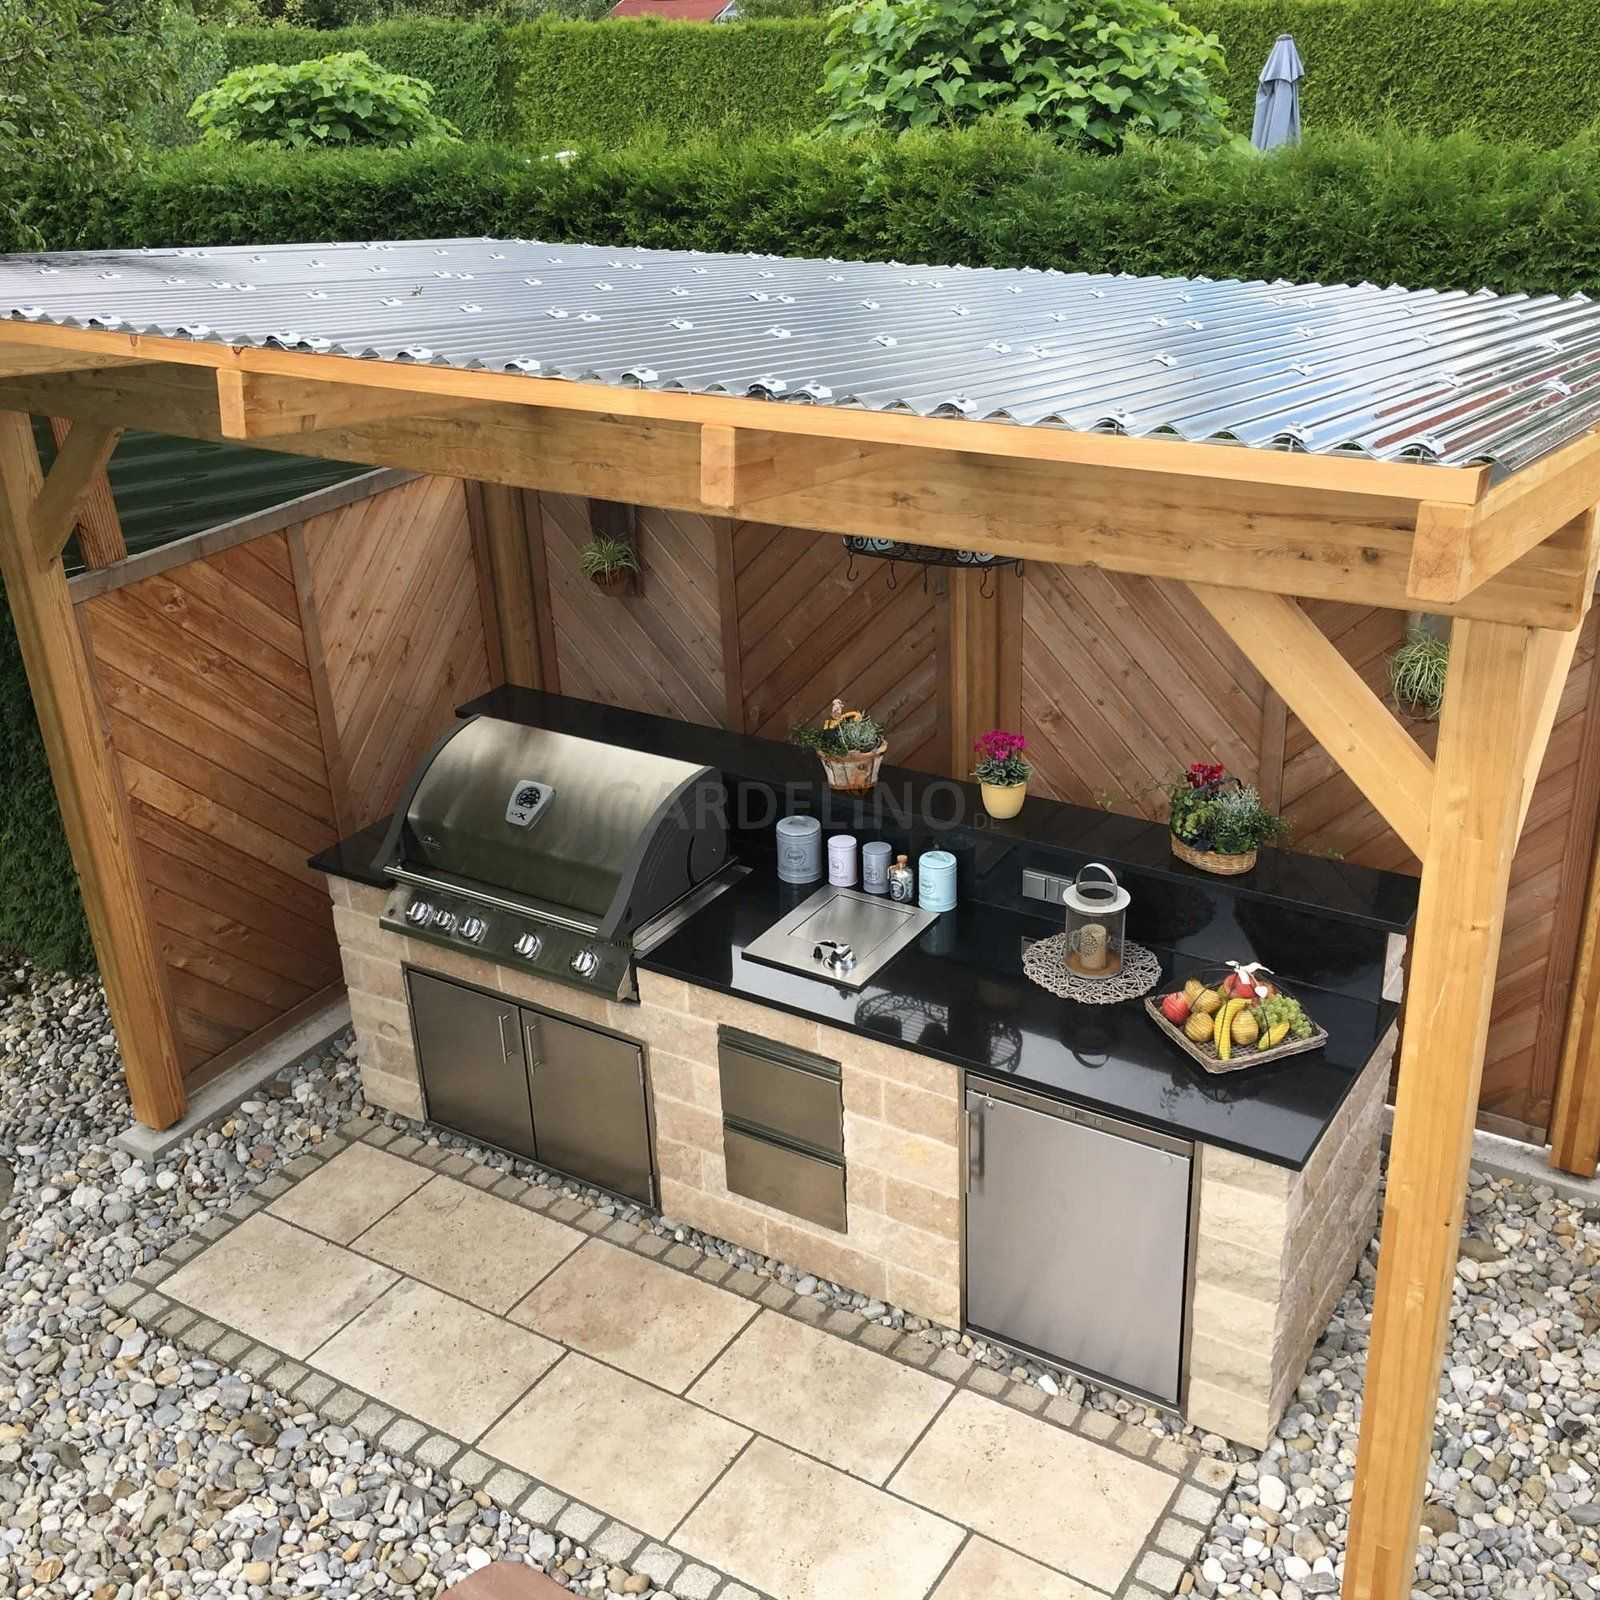 Outside Living Blog Outstanding Collection Of Outdoor Cooking Area Layouts To Get You Influen Outdoor Kitchen Decor Outdoor Kitchen Patio Backyard Kitchen